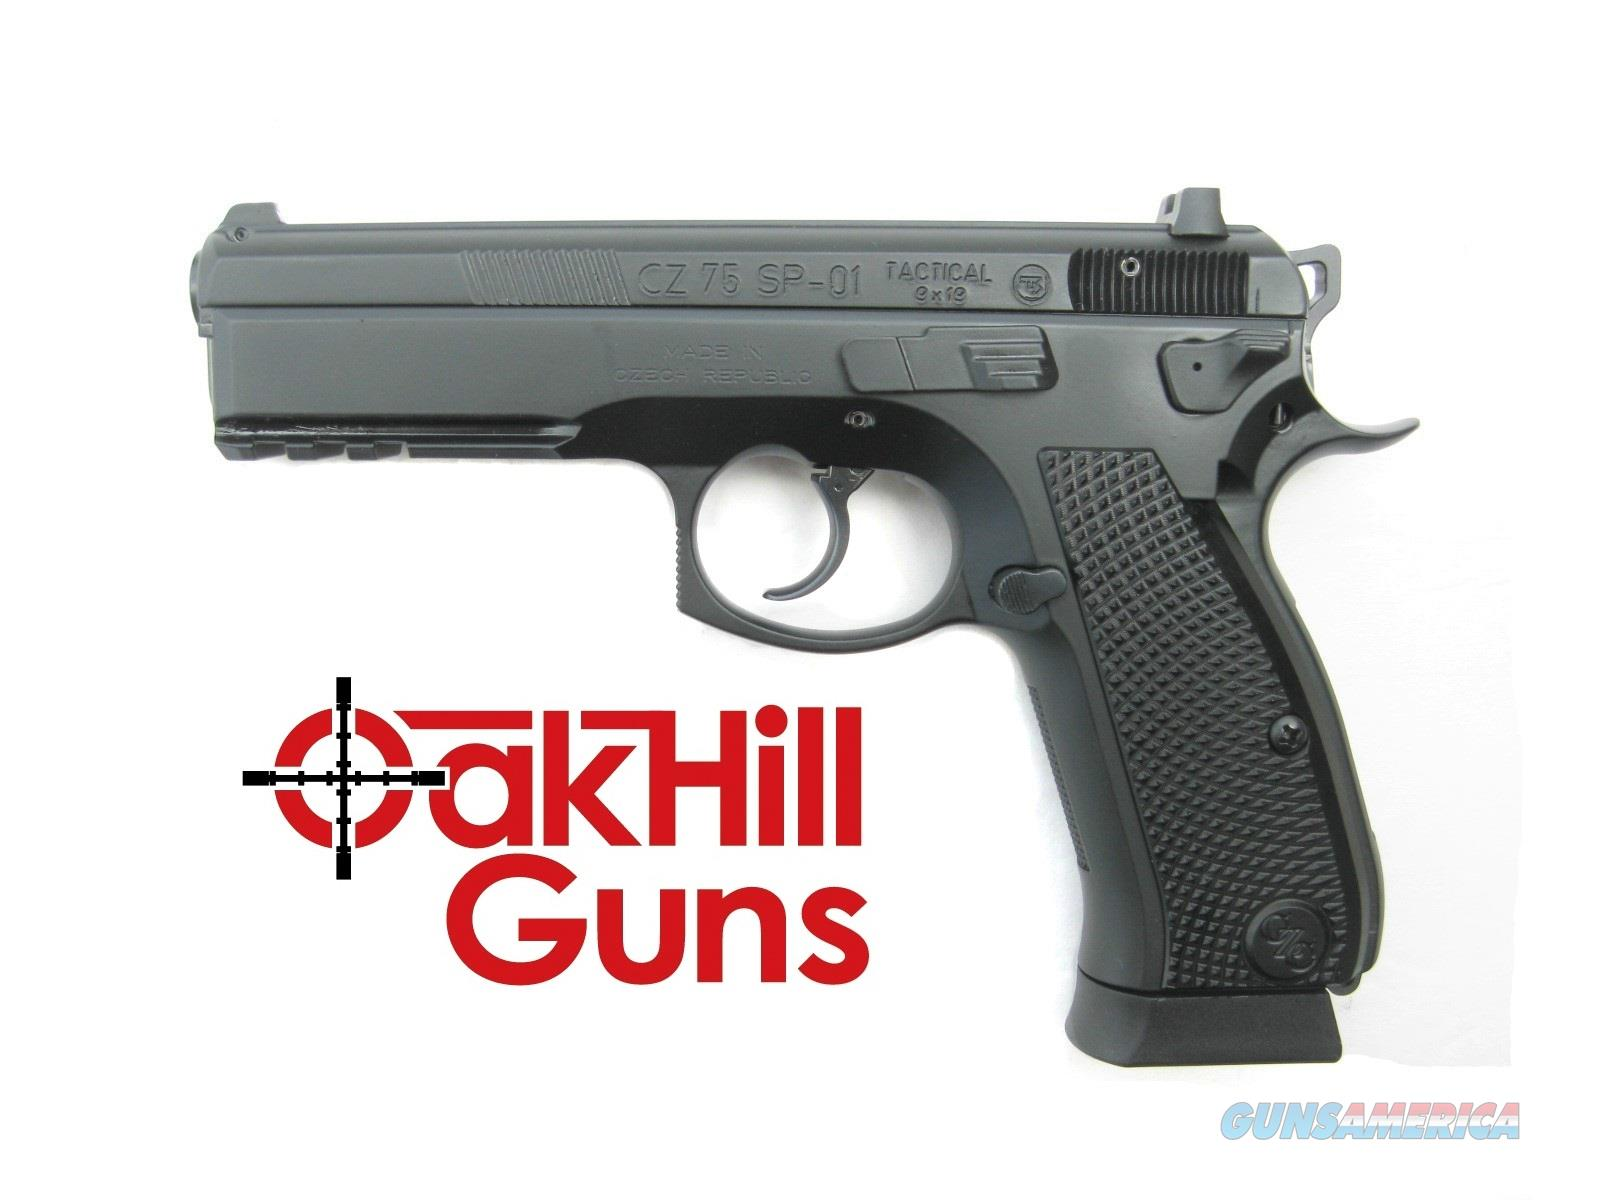 CZ 75 SP-01 Tactical 9mm CZ Custom Tuned Decocker 18 rd 99104 *NEW*  Guns > Pistols > CZ Pistols